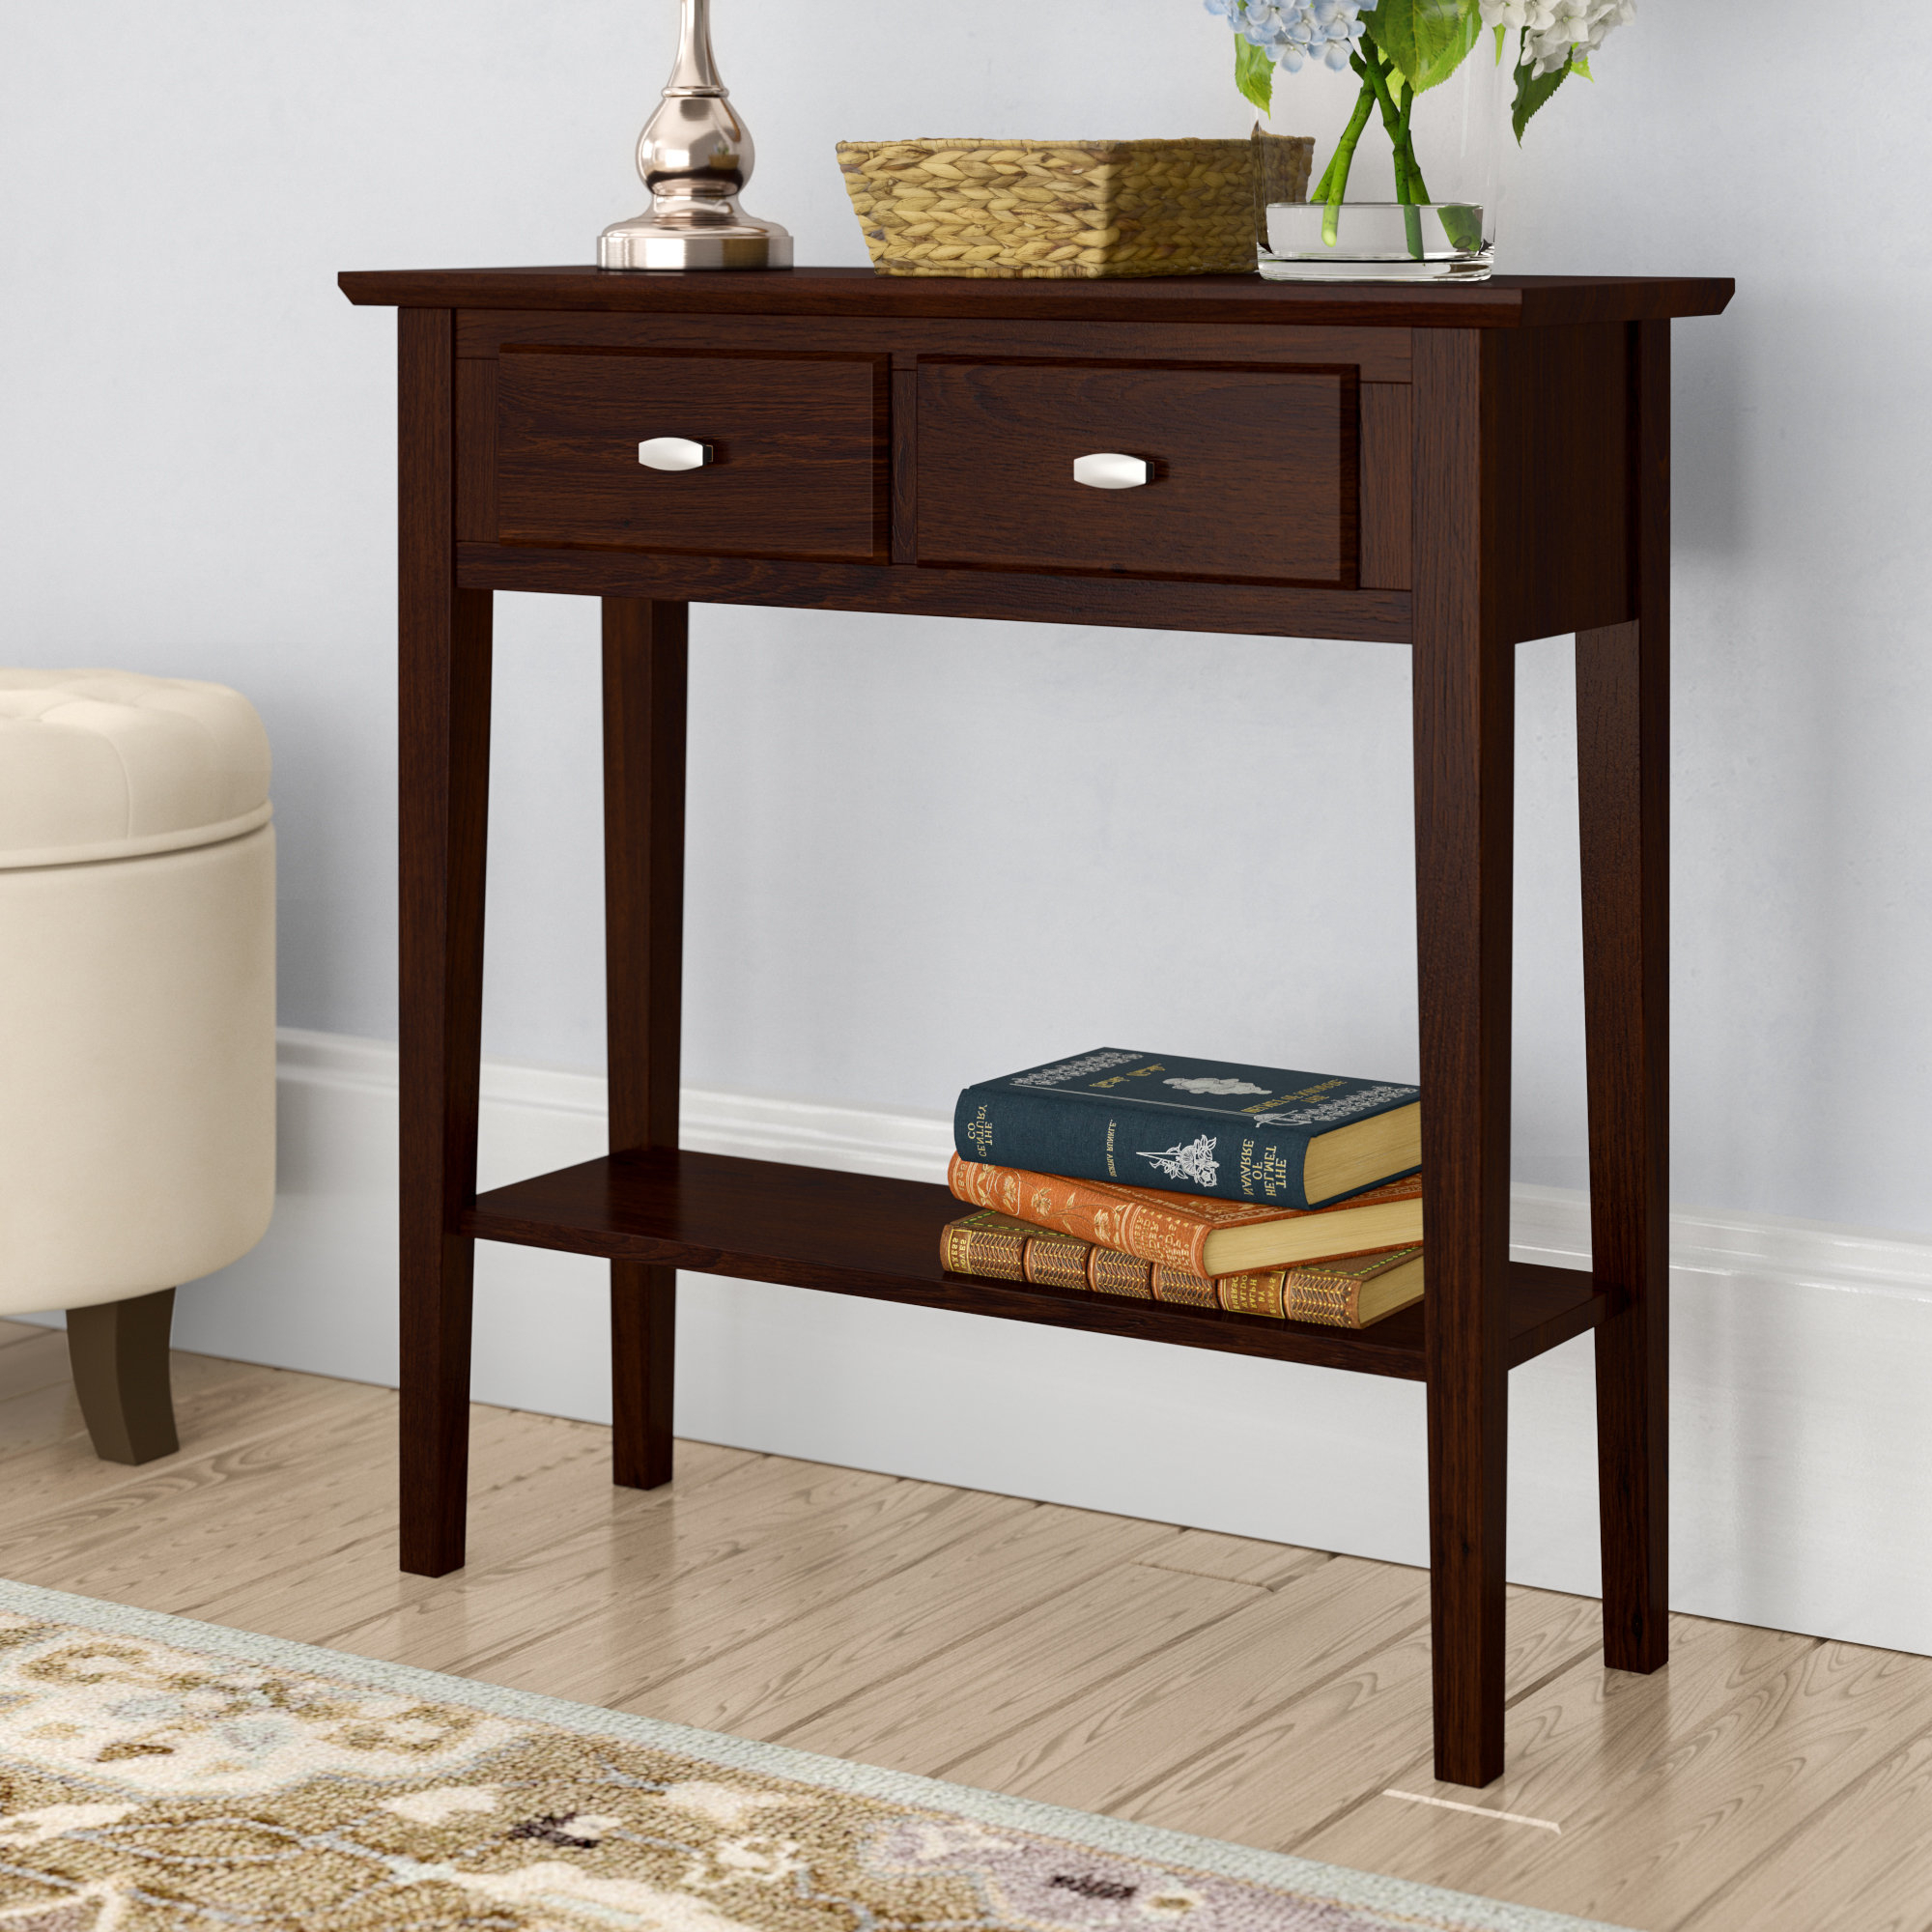 Narrow Low Console Table | Wayfair With Layered Wood Small Square Console Tables (View 7 of 20)